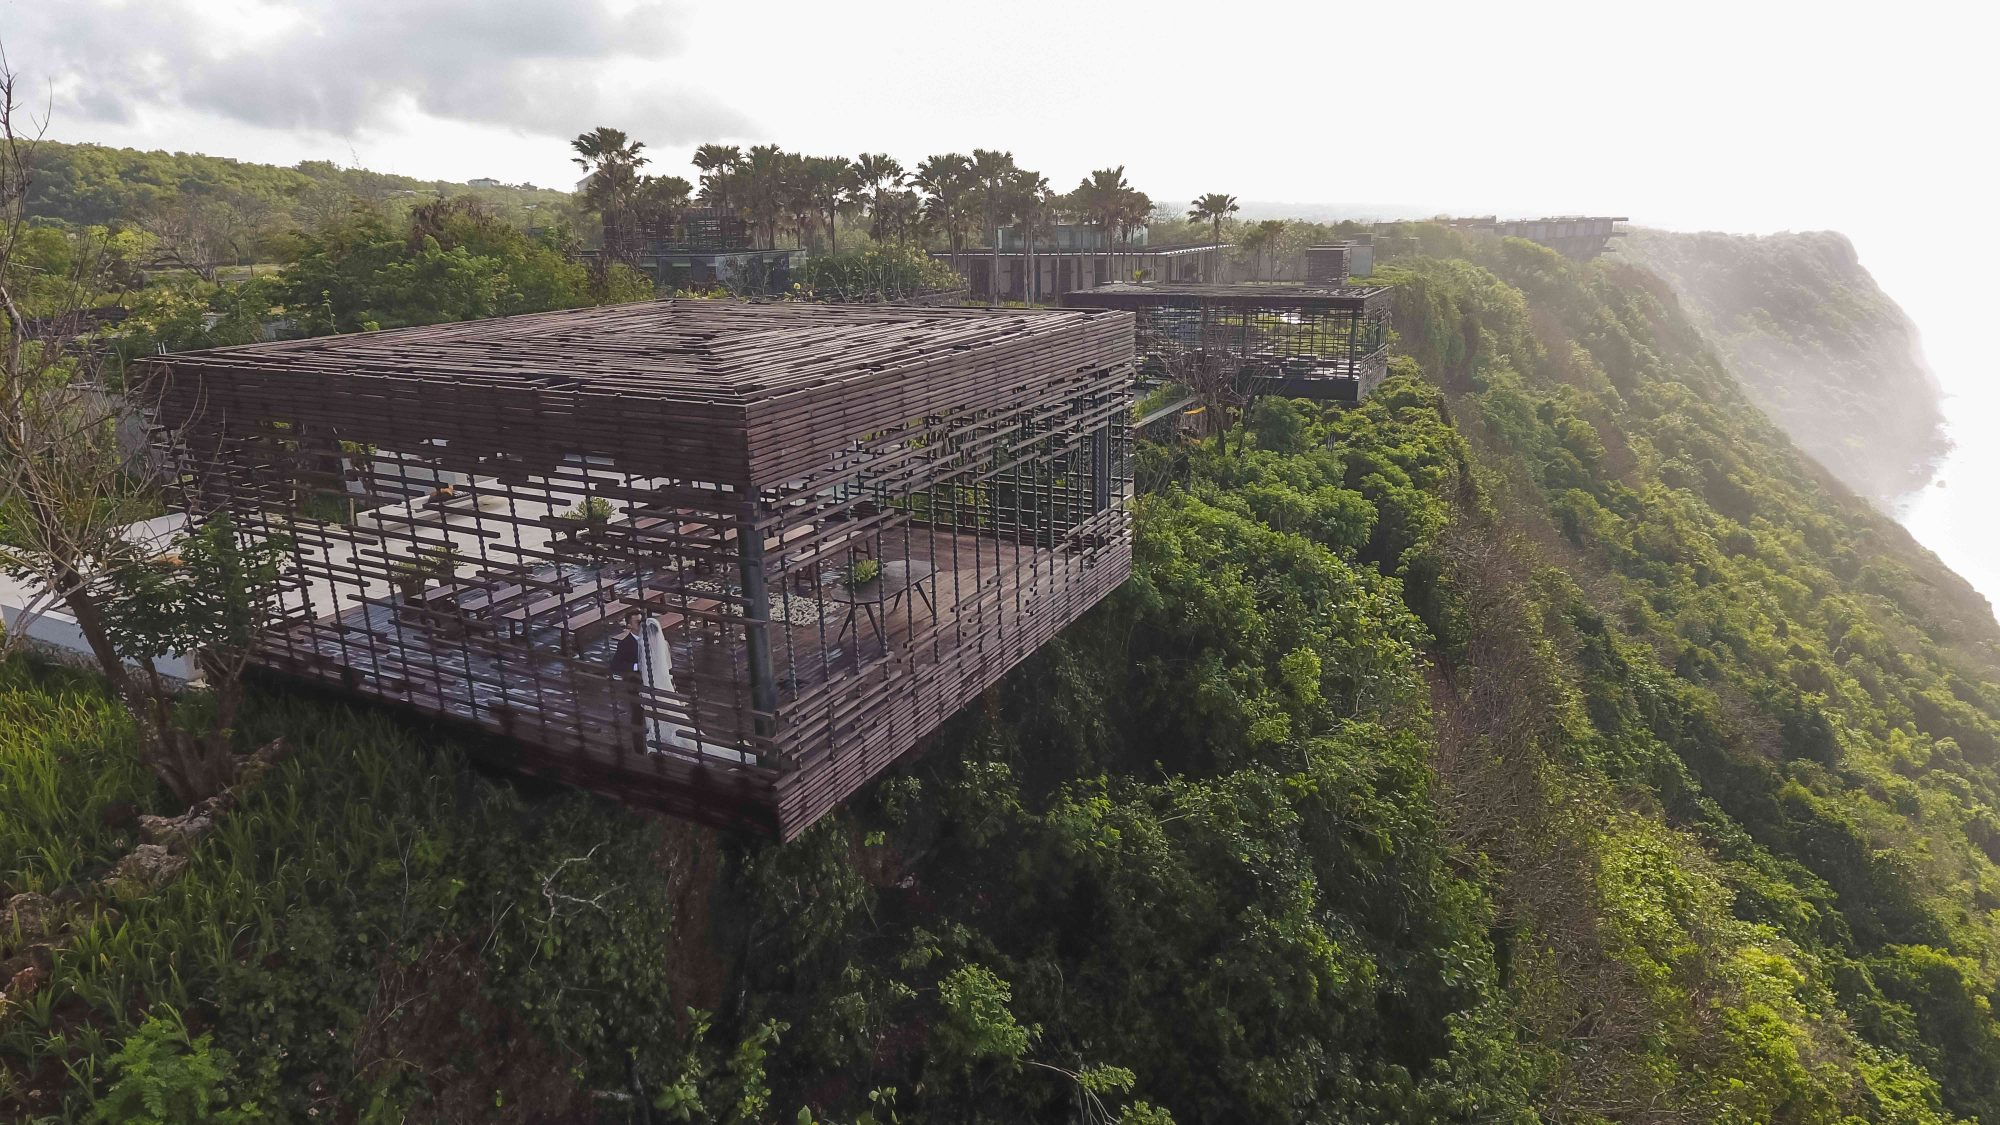 Bird's eye view of Wedding Venue in Alila Villas Uluwatu